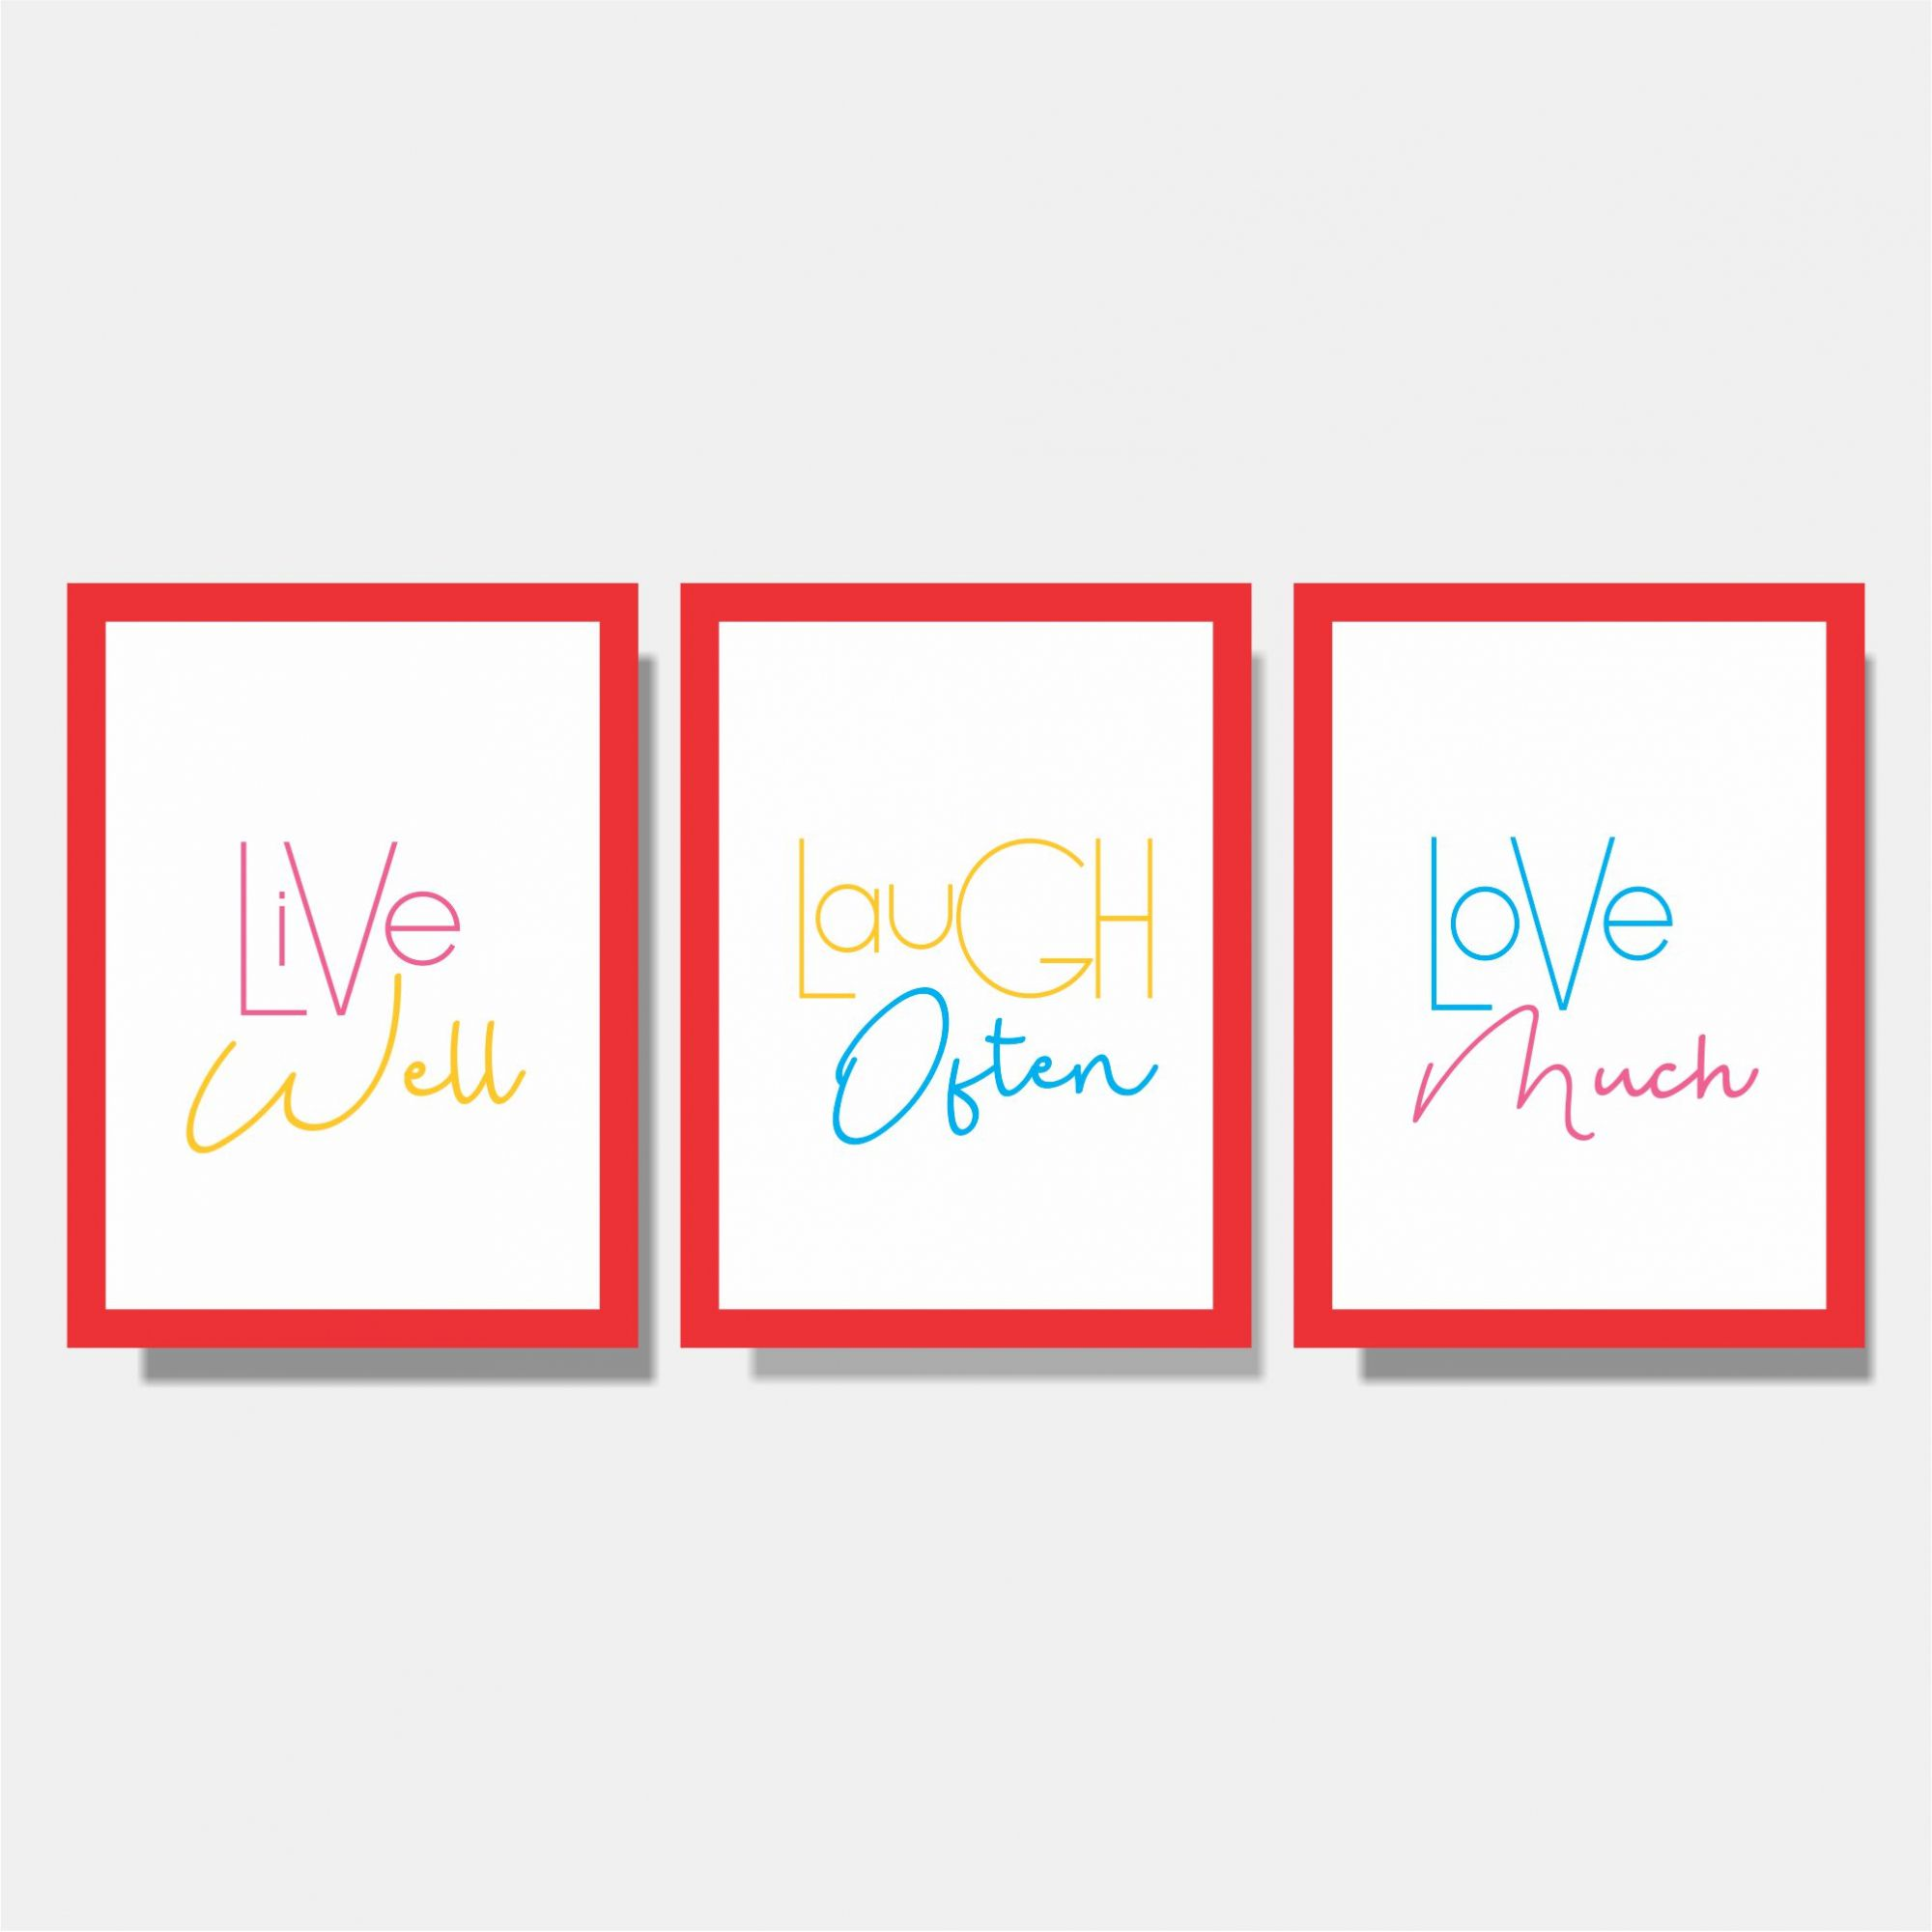 Kit Conjunto de Quadros - Live Well + Laugh Often + Love Much